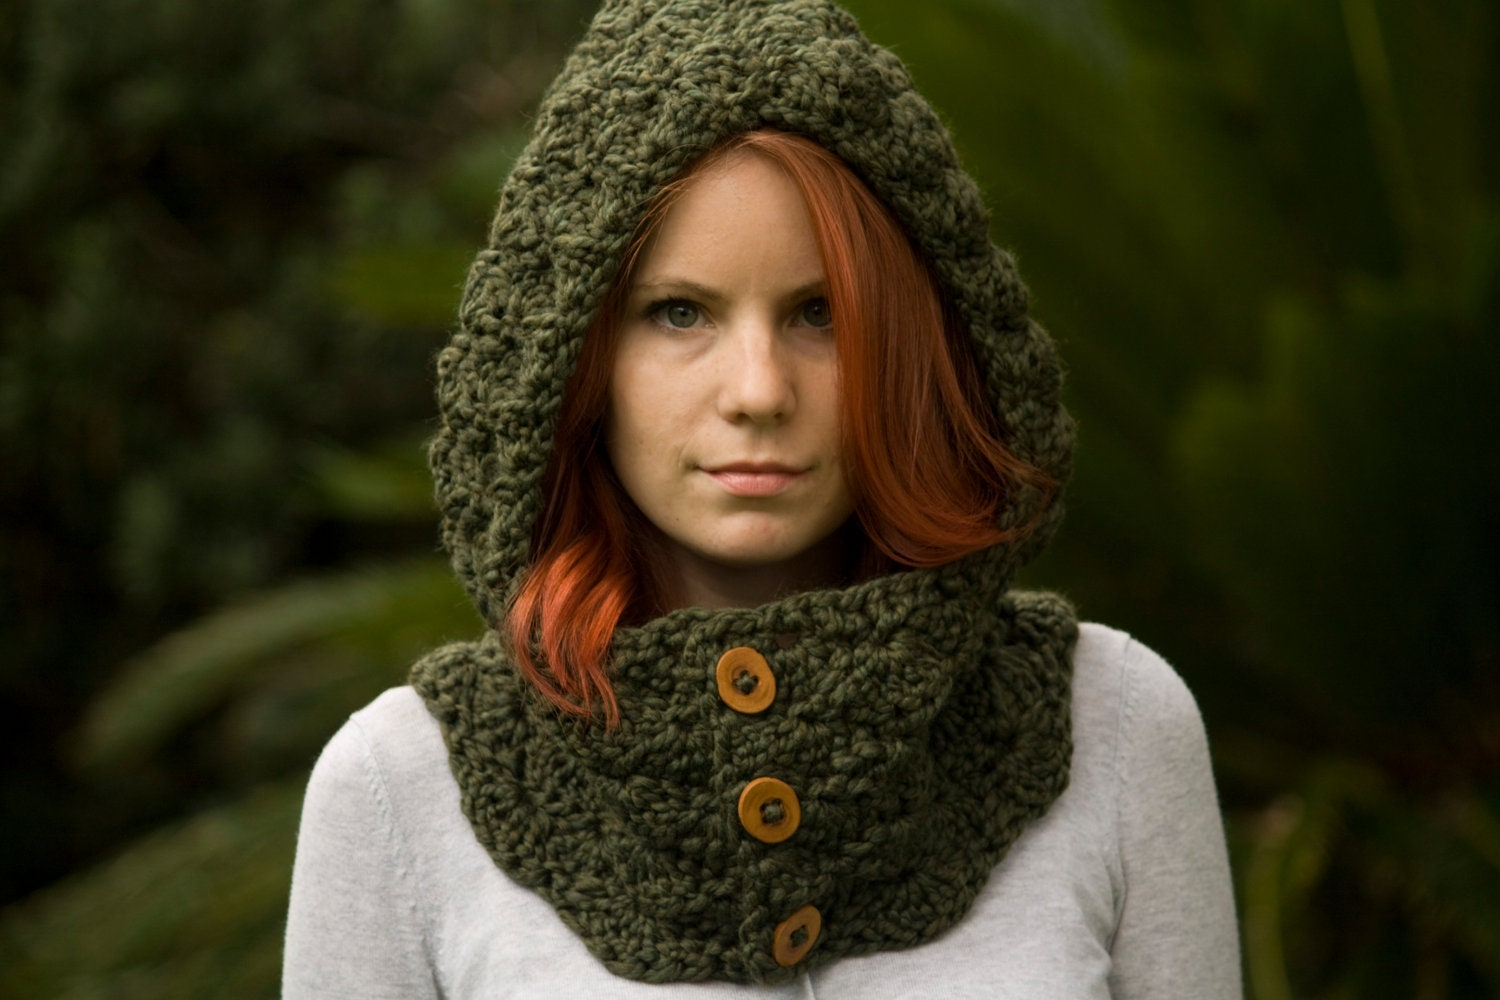 Free Crochet Pattern Toddler Hooded Cowl : Free Pattern For Crochet Hooded Cowl myideasbedroom.com